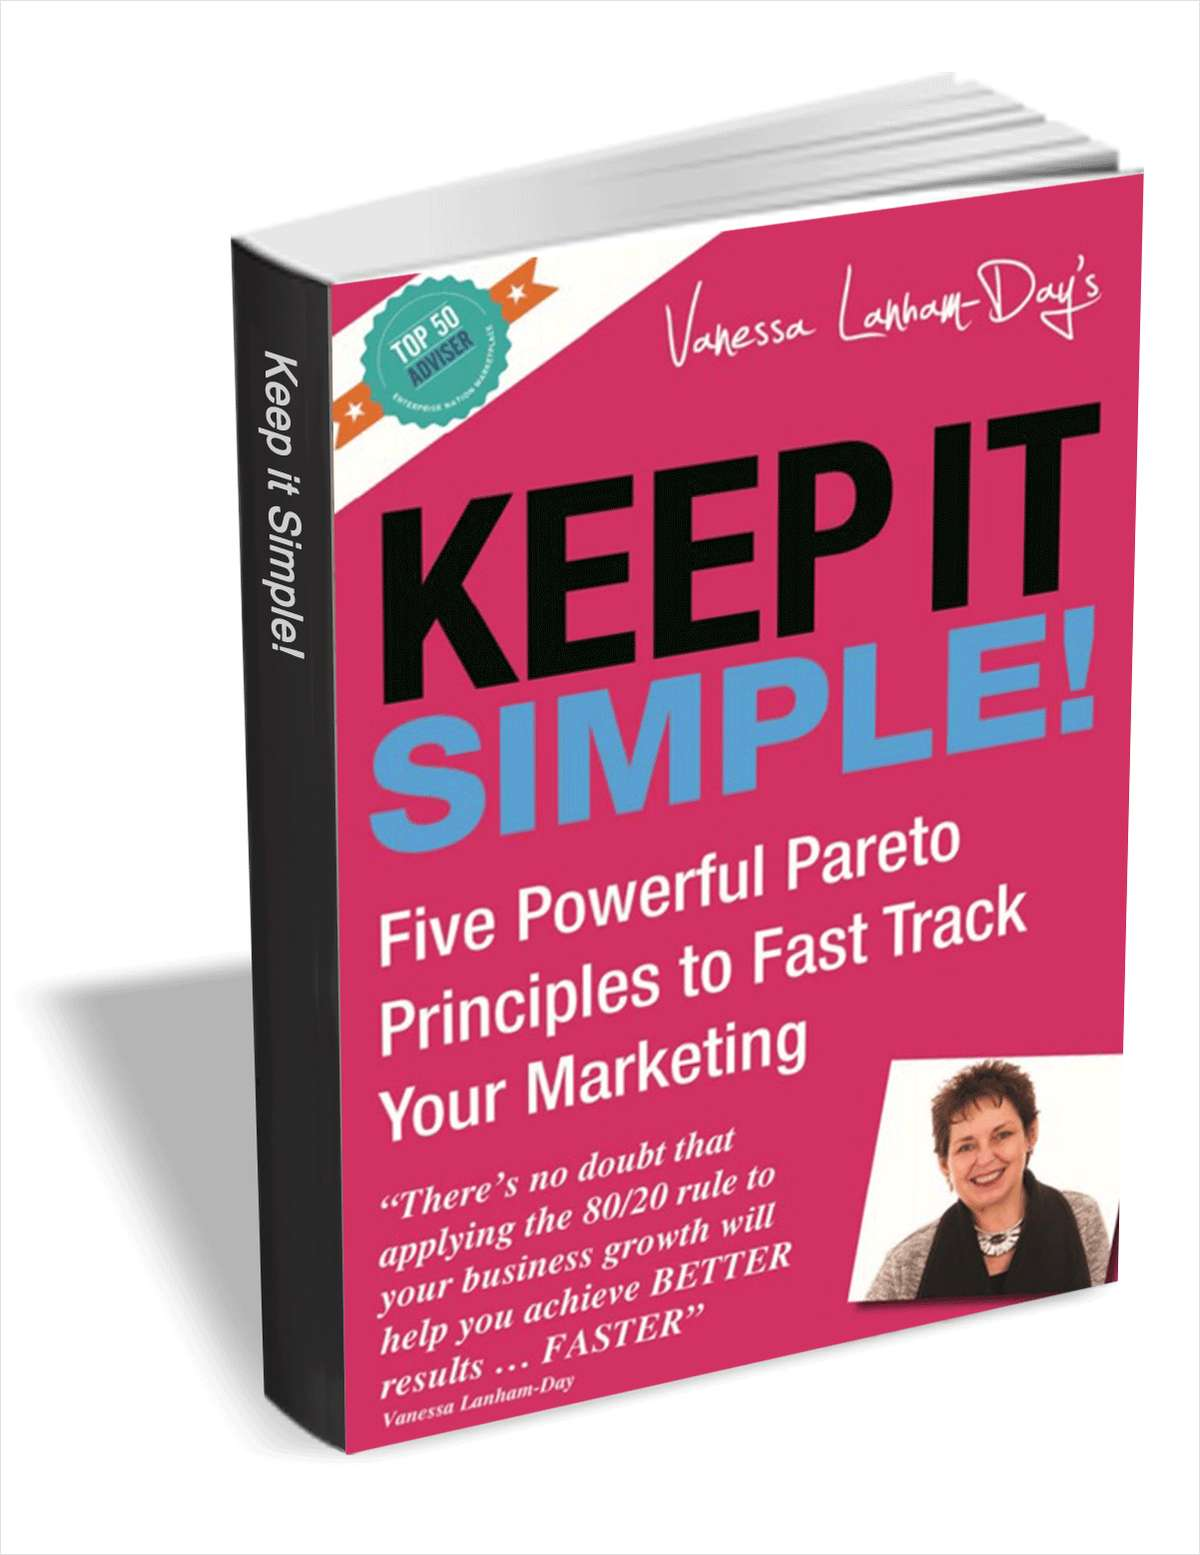 Keep it Simple - Five Powerful Pareto Principles to Fast Track Your Marketing